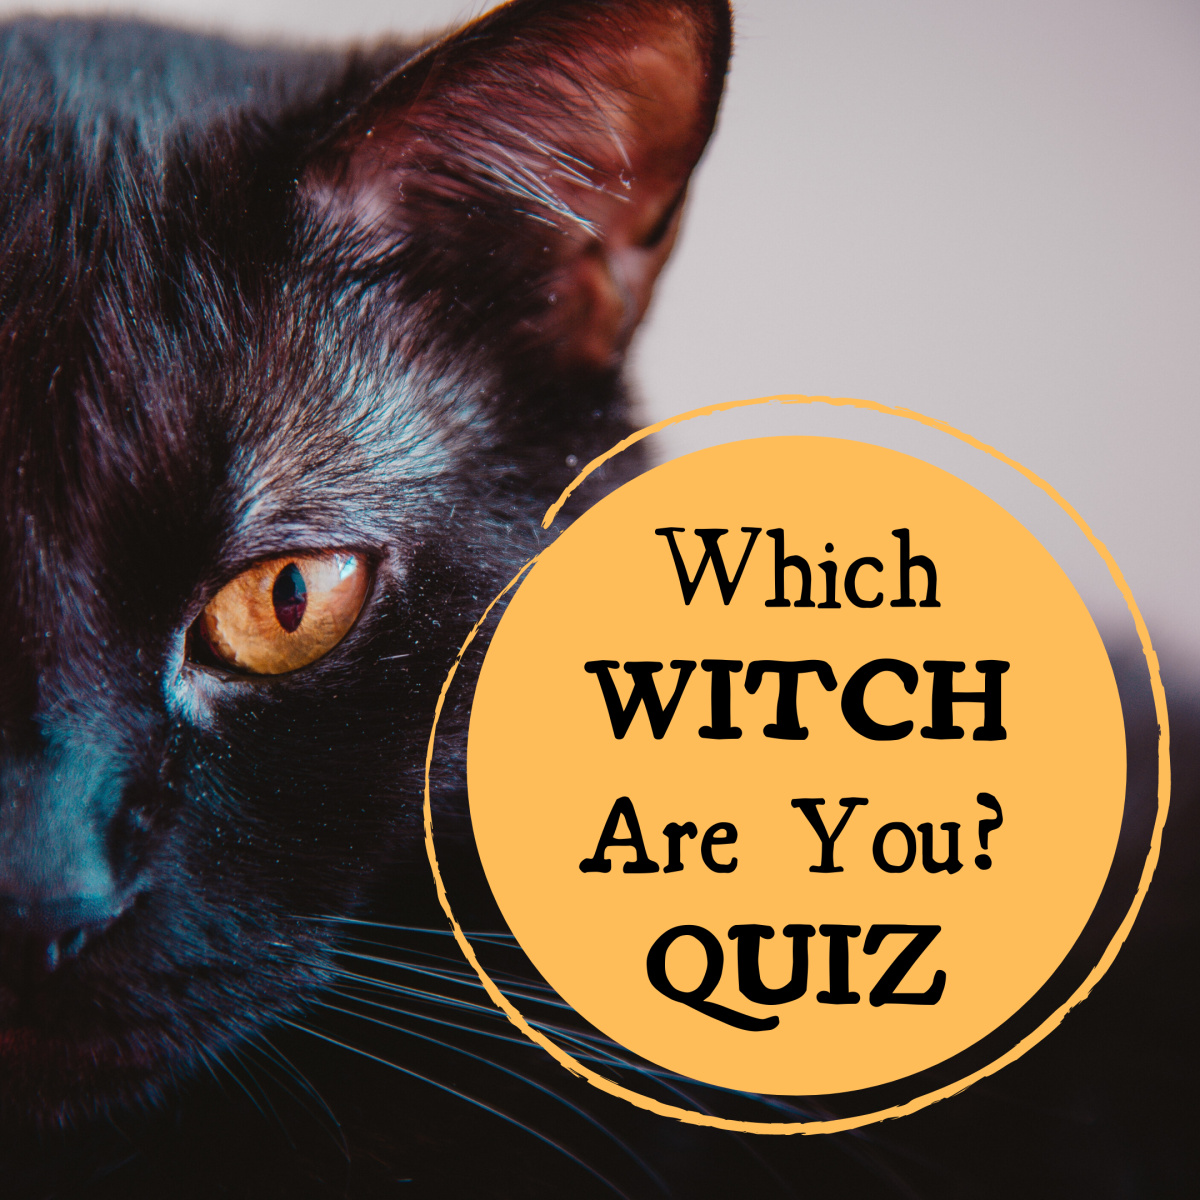 Which TV or movie witch are you? Take the quiz and find out here!